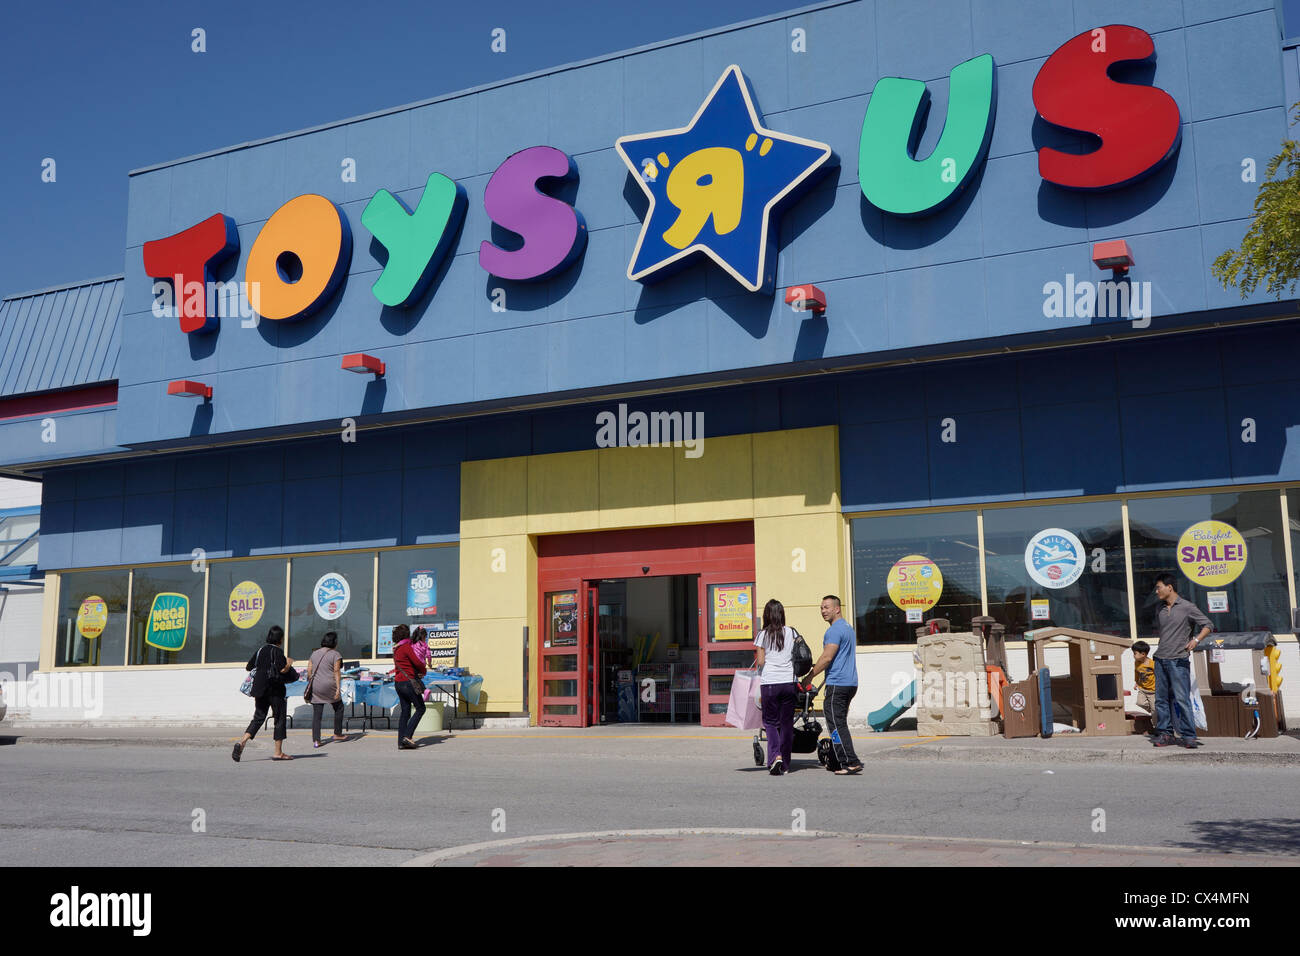 Toys R Us - Stock Image